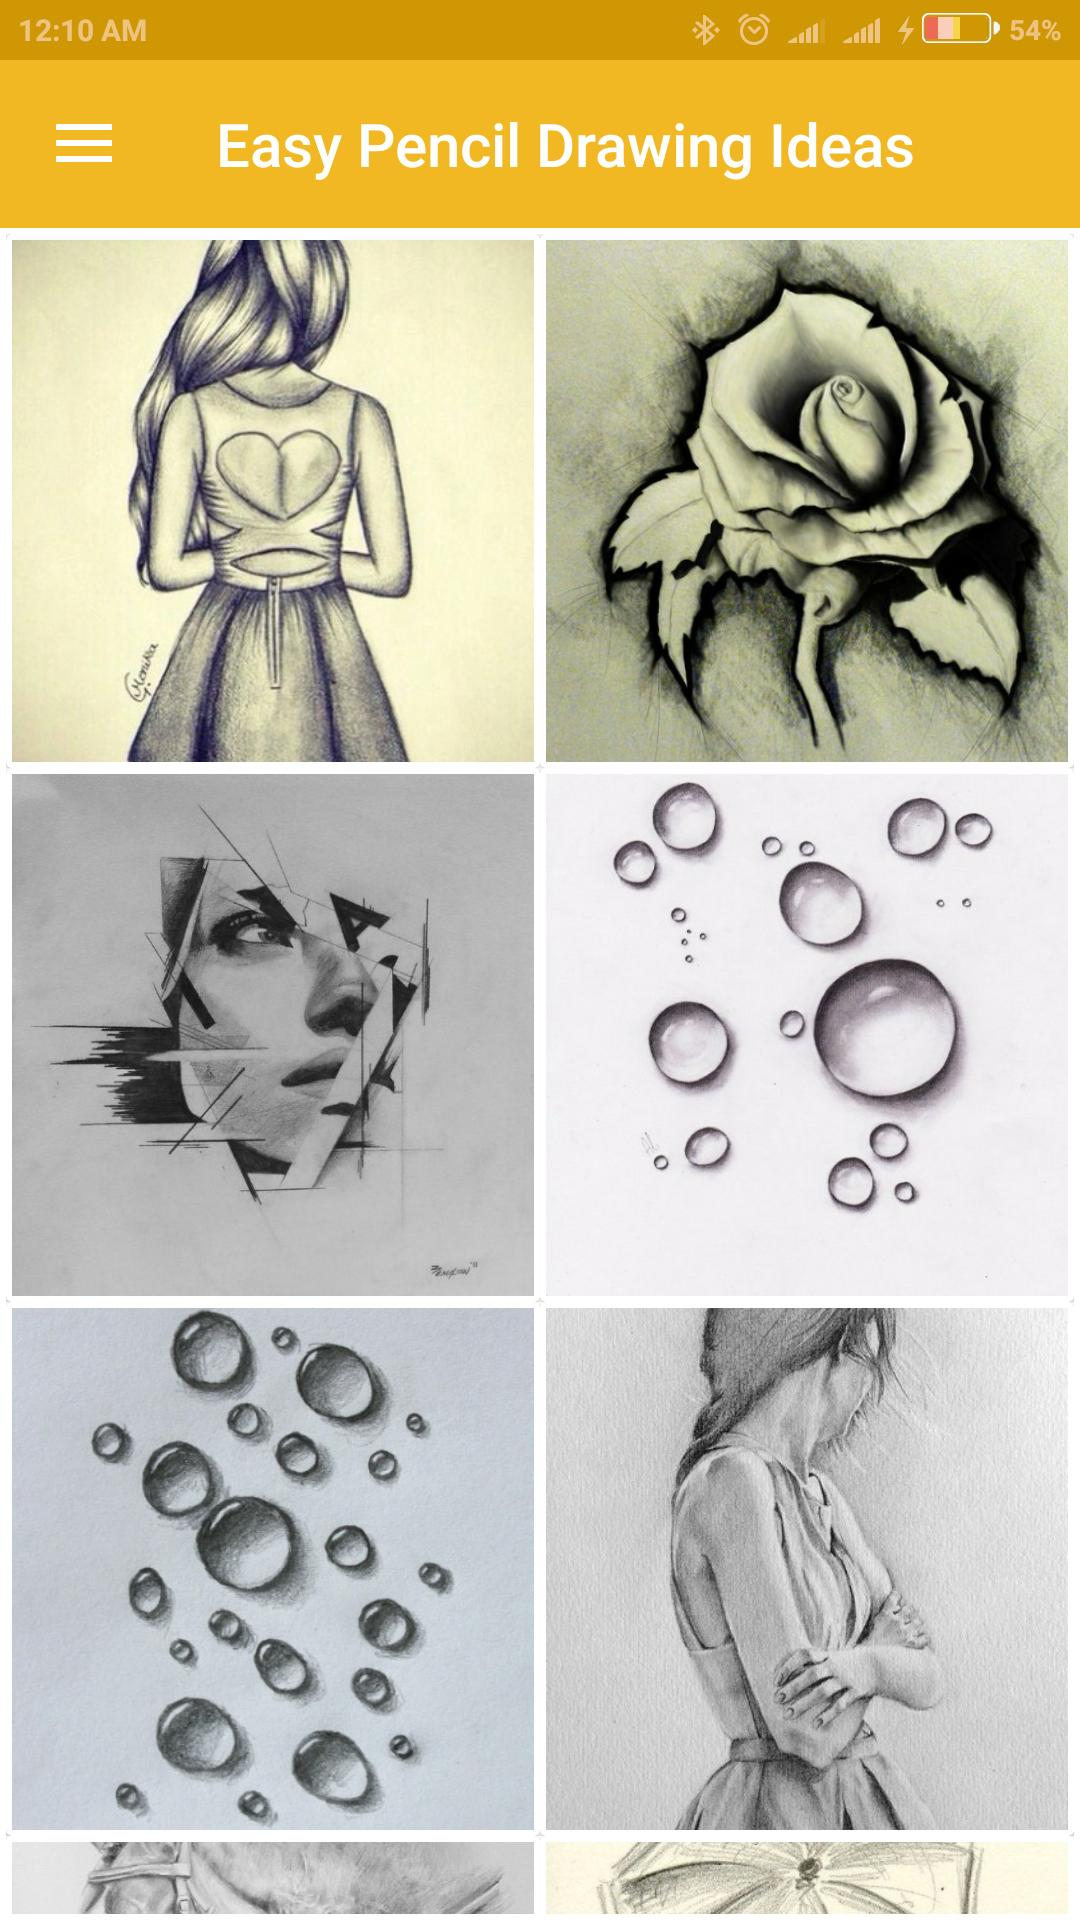 Easy Pencil Drawing Ideas for Android - APK Download